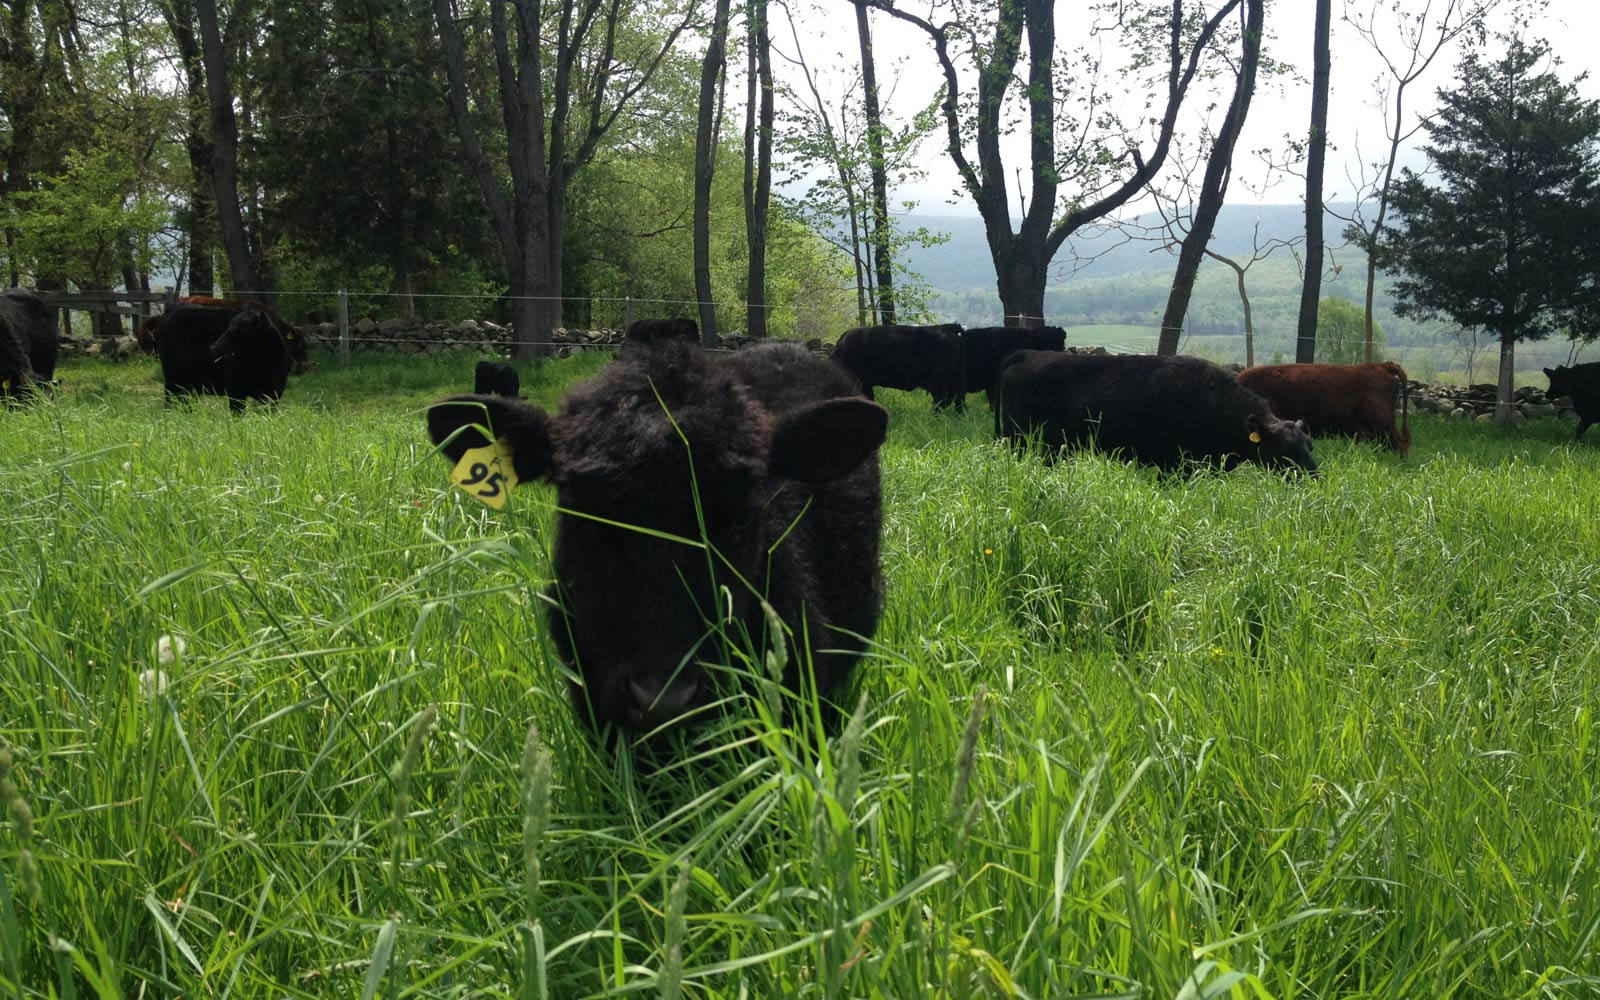 vernon valley farm - single cow eating grass